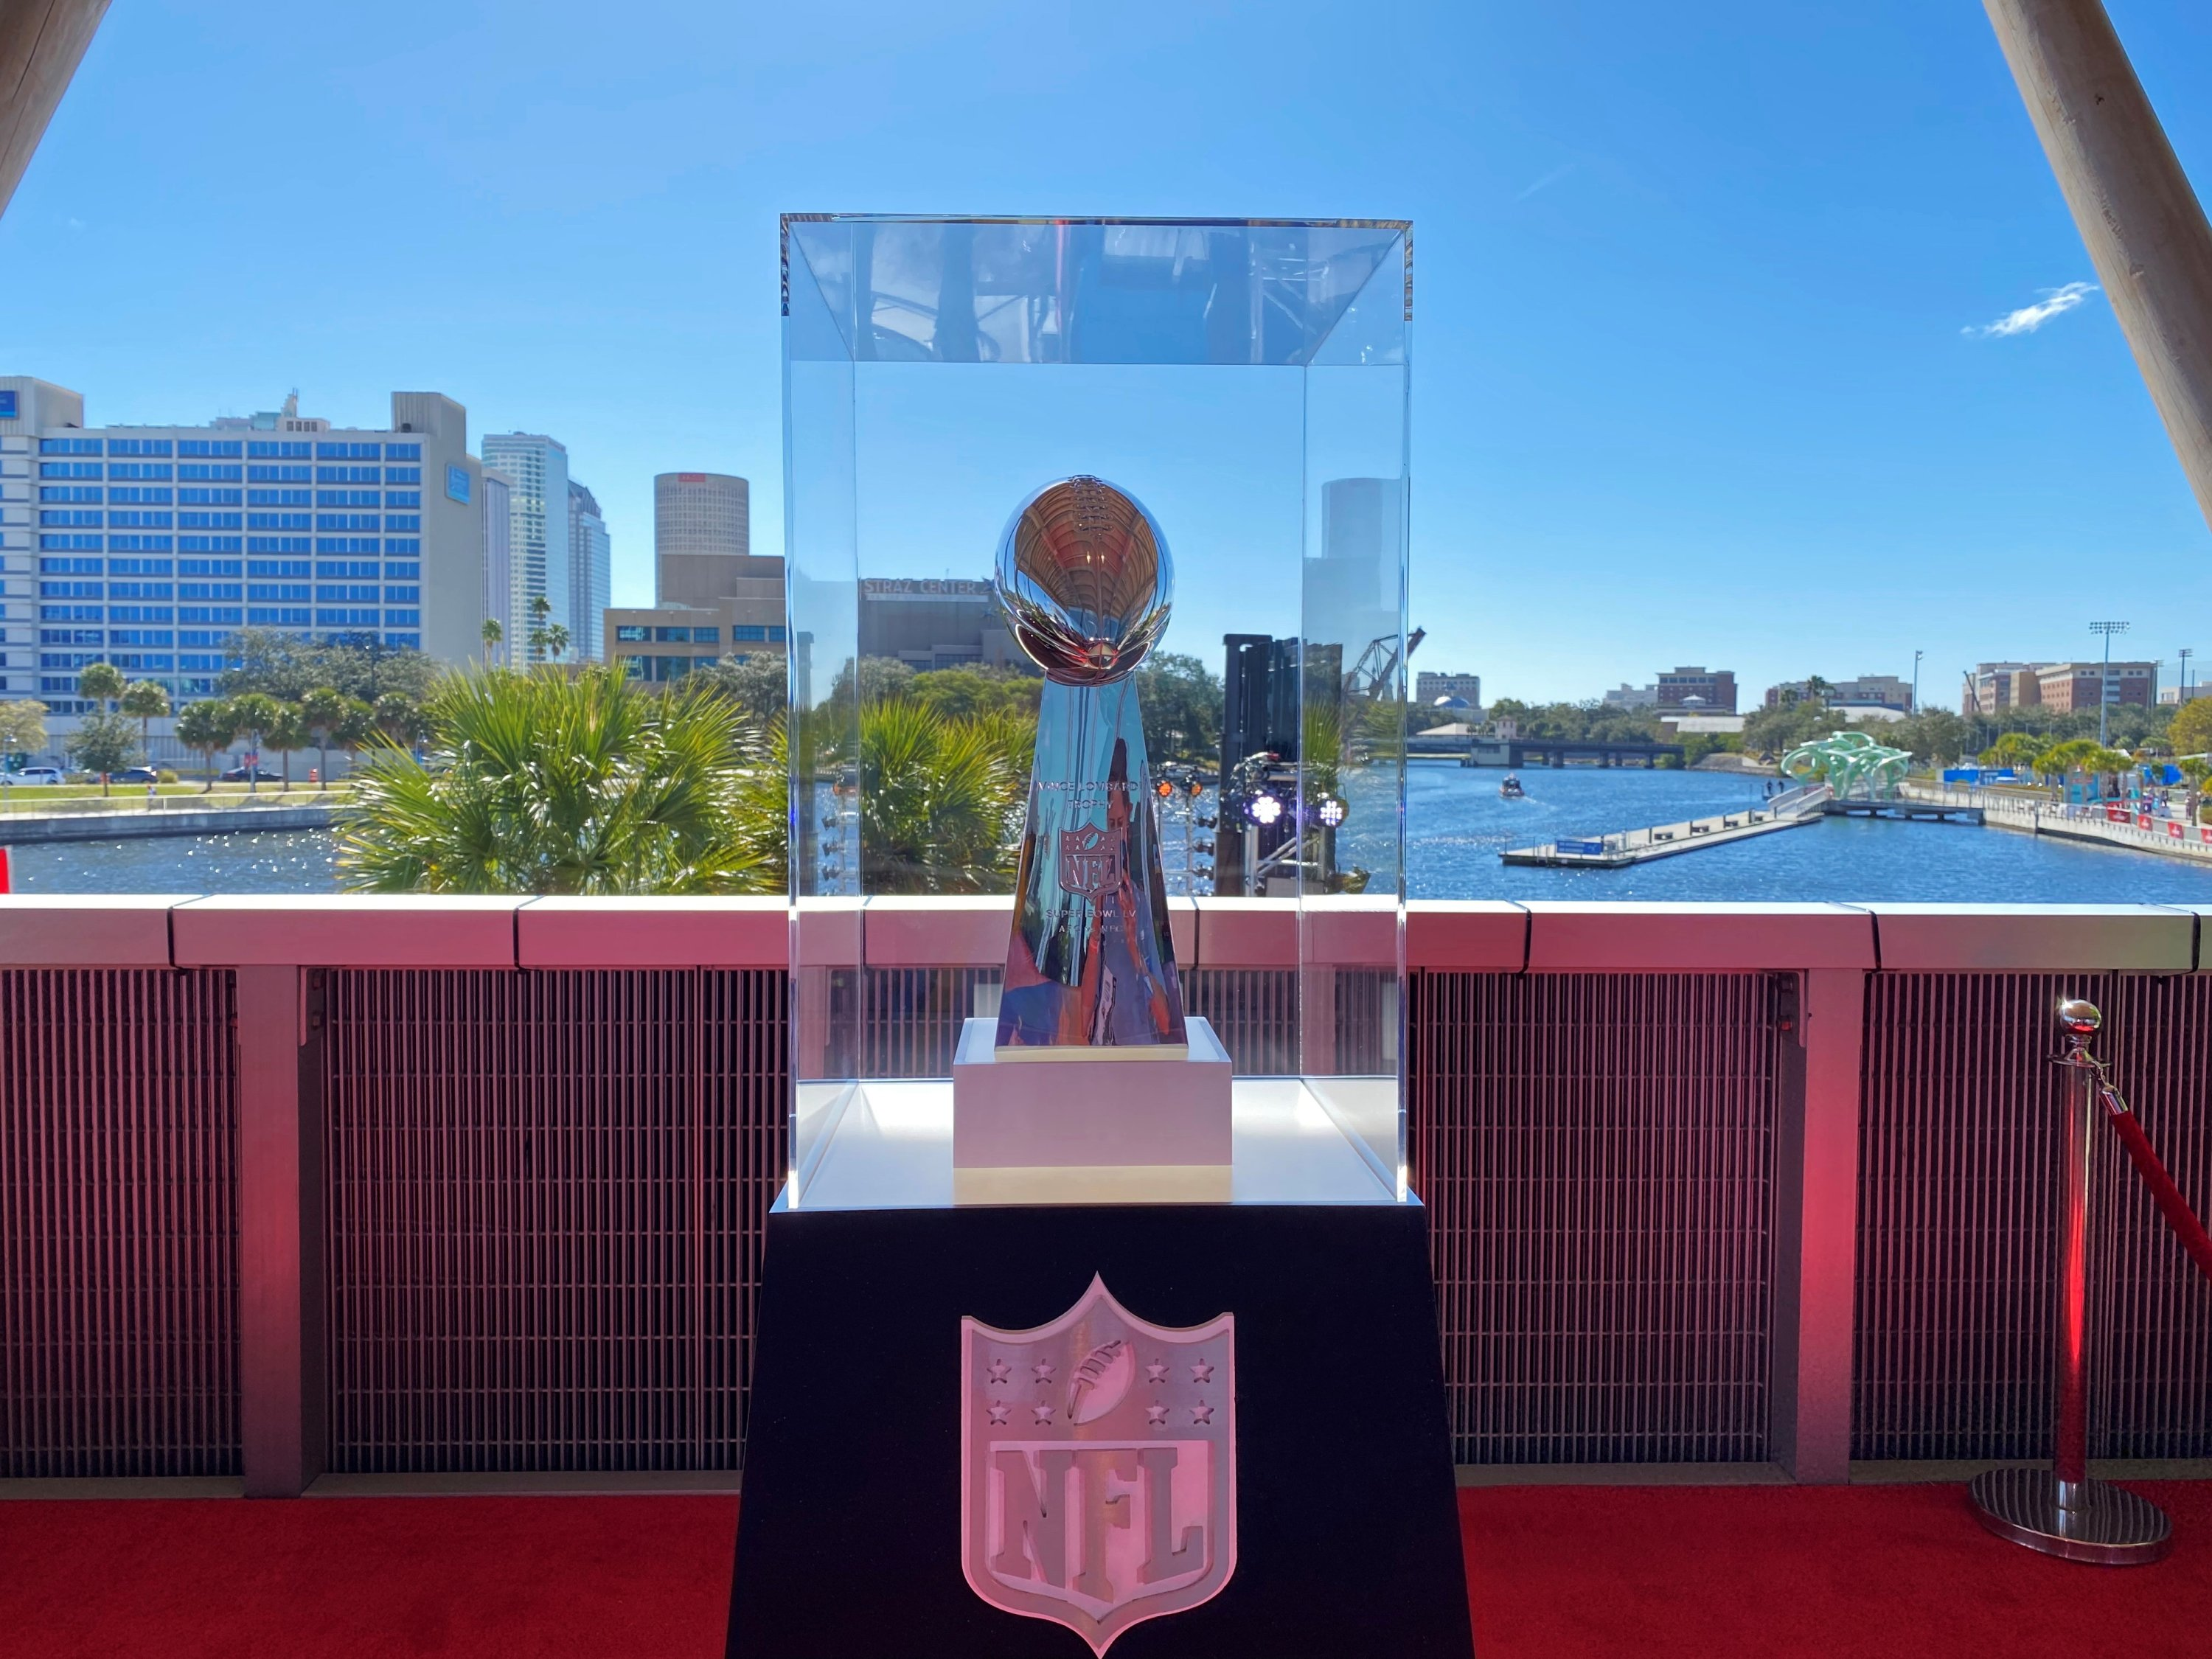 The Vince Lombardi trophy on display before it is awarded to the winning team of Super Bowl LV in Tampa, Florida, U.S., Feb. 5, 2021. (REUTERS Photo)